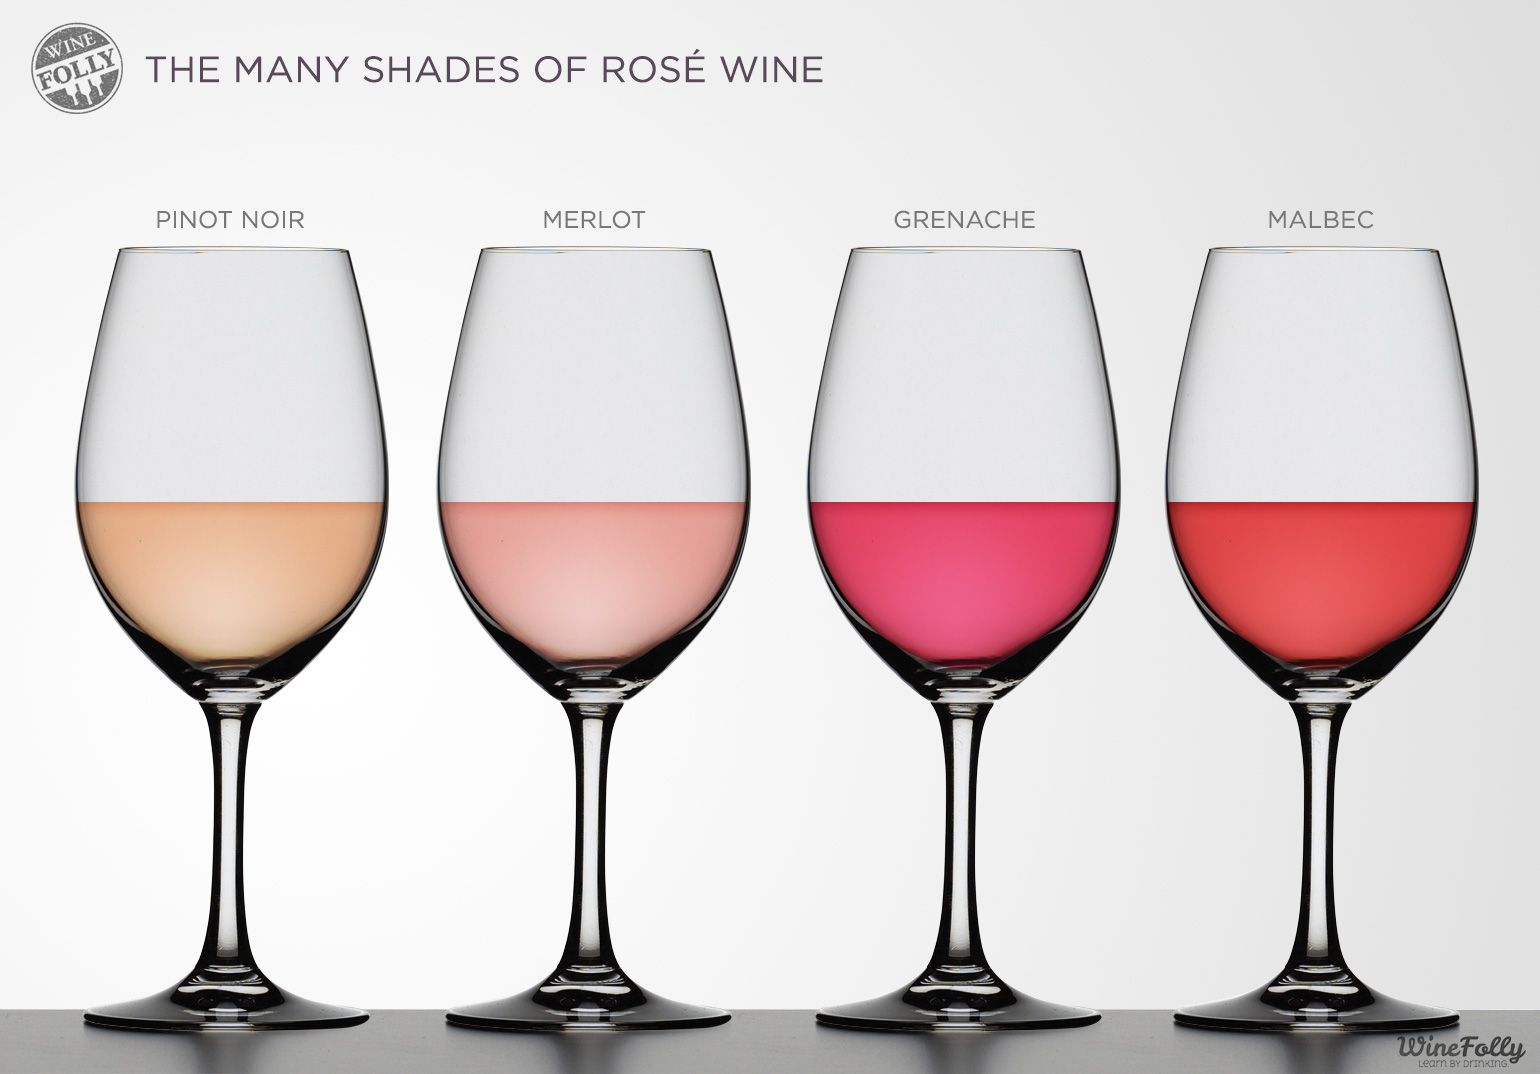 Resultados da Pesquisa de imagens do Google para http://winefolly.com/wp-content/uploads/2013/05/the-many-shades-of-rose-wine-in-a-glass.jpg